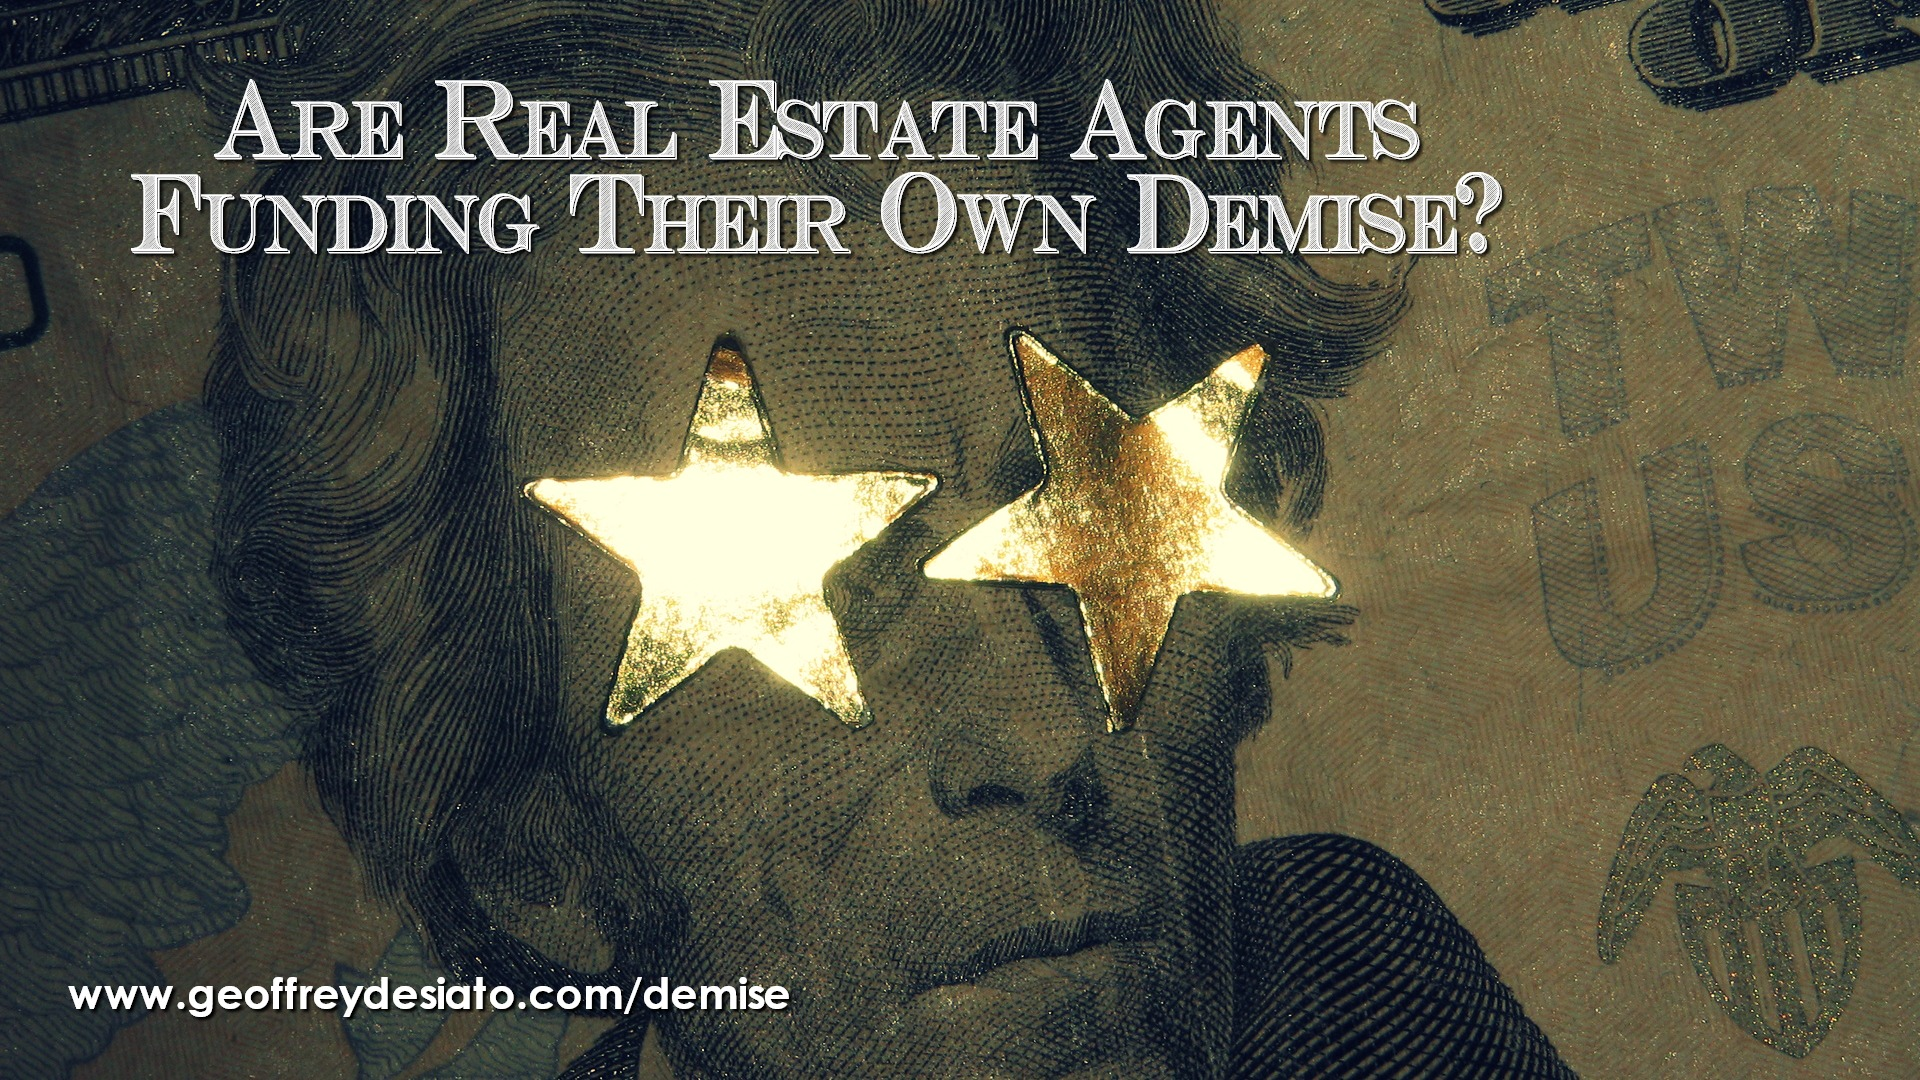 Are Real Estate Agents Funding Their Own Demise